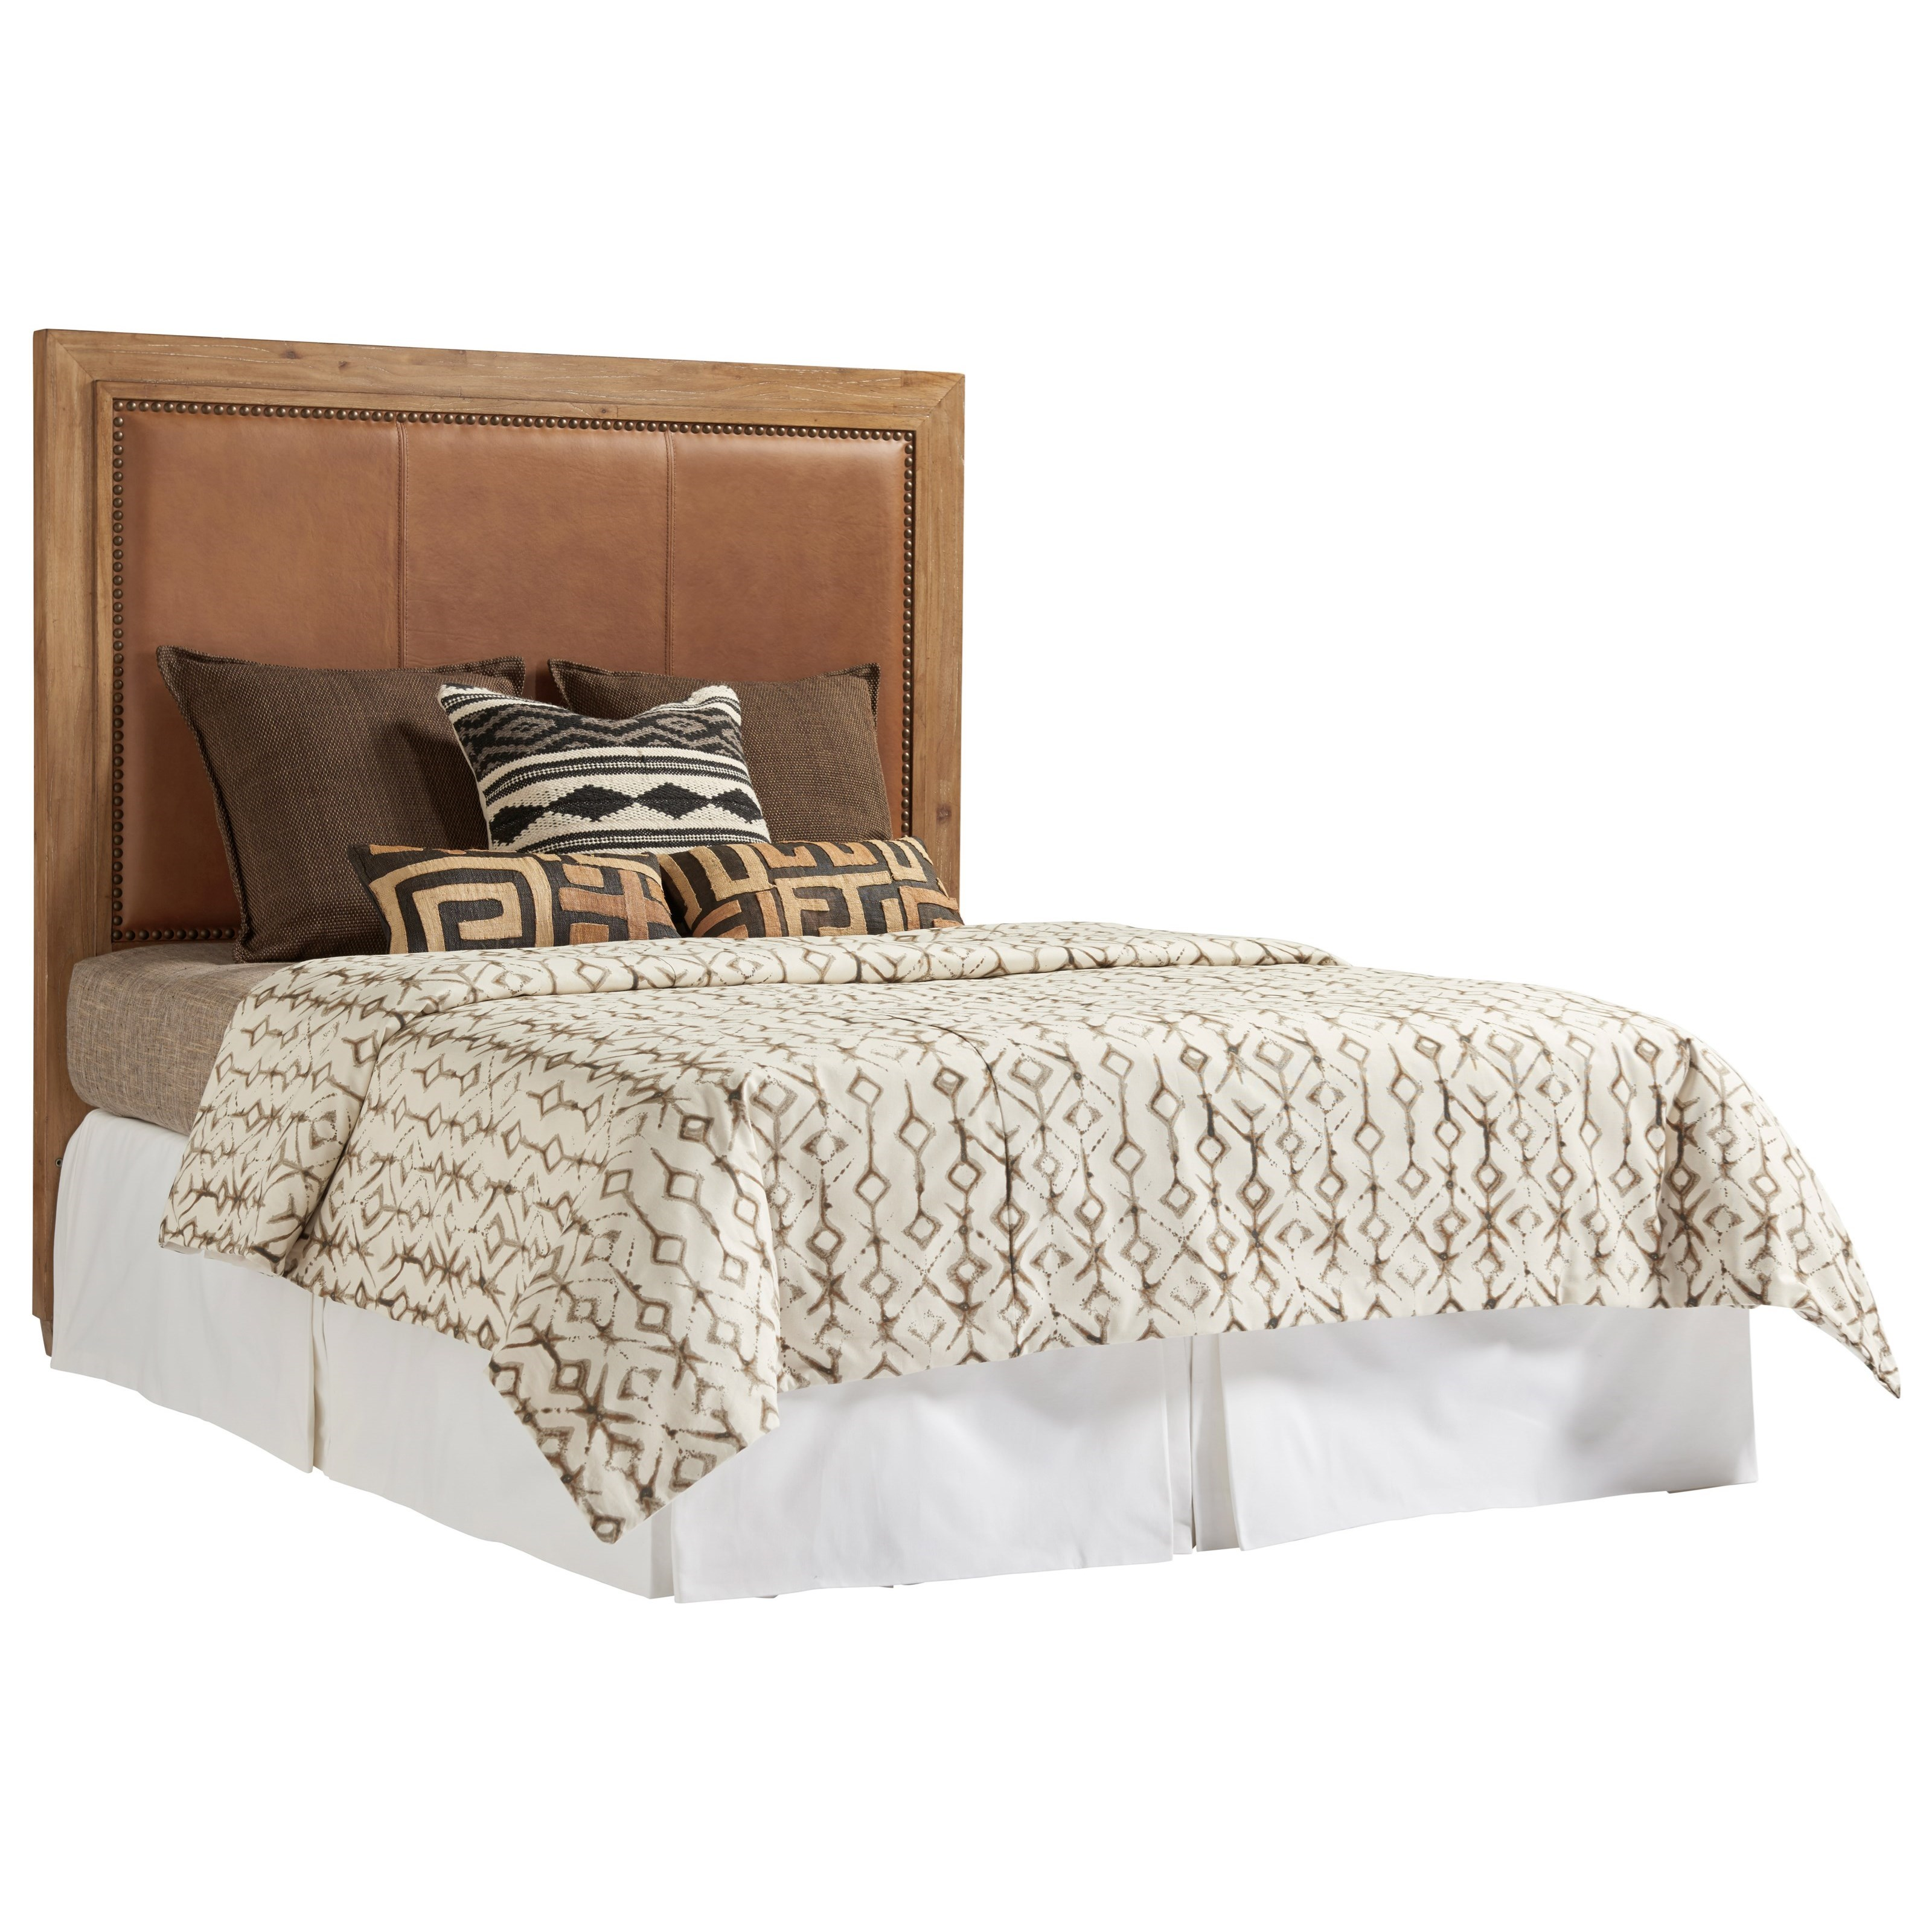 Los Altos Antilles Upholstered Panel Headboard 6/6 Kin by Tommy Bahama Home at Baer's Furniture